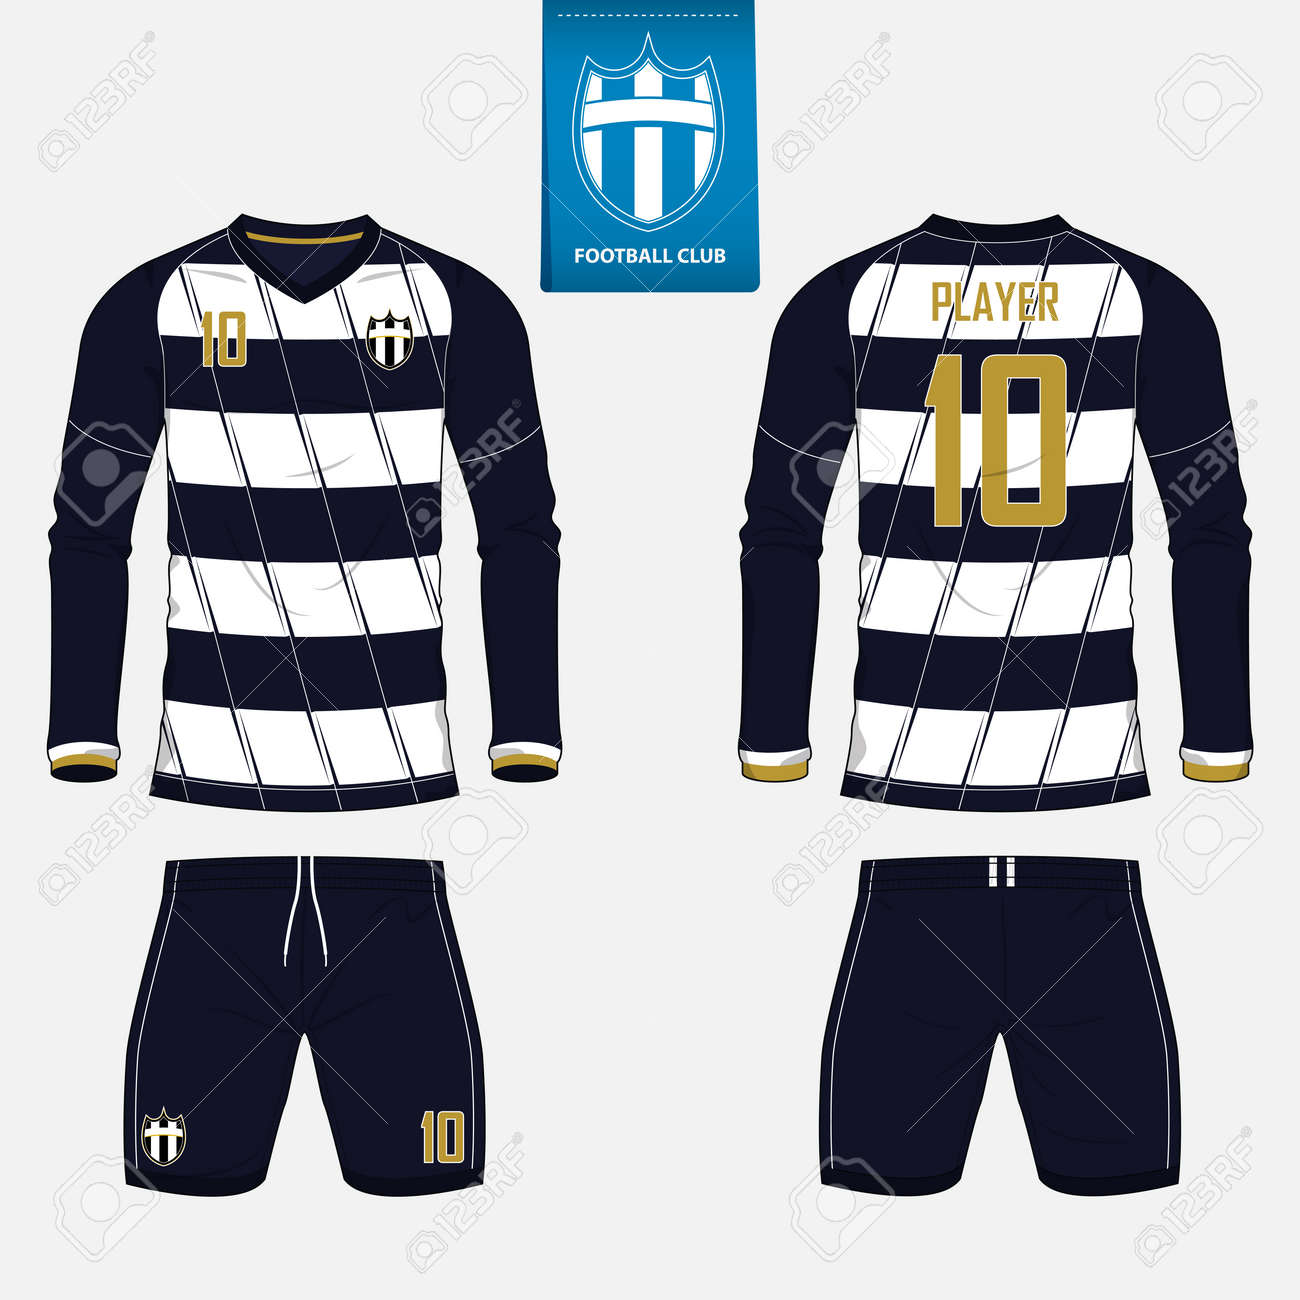 wholesale dealer dafbf b325a Set of long sleeve soccer jersey or football kit template for..